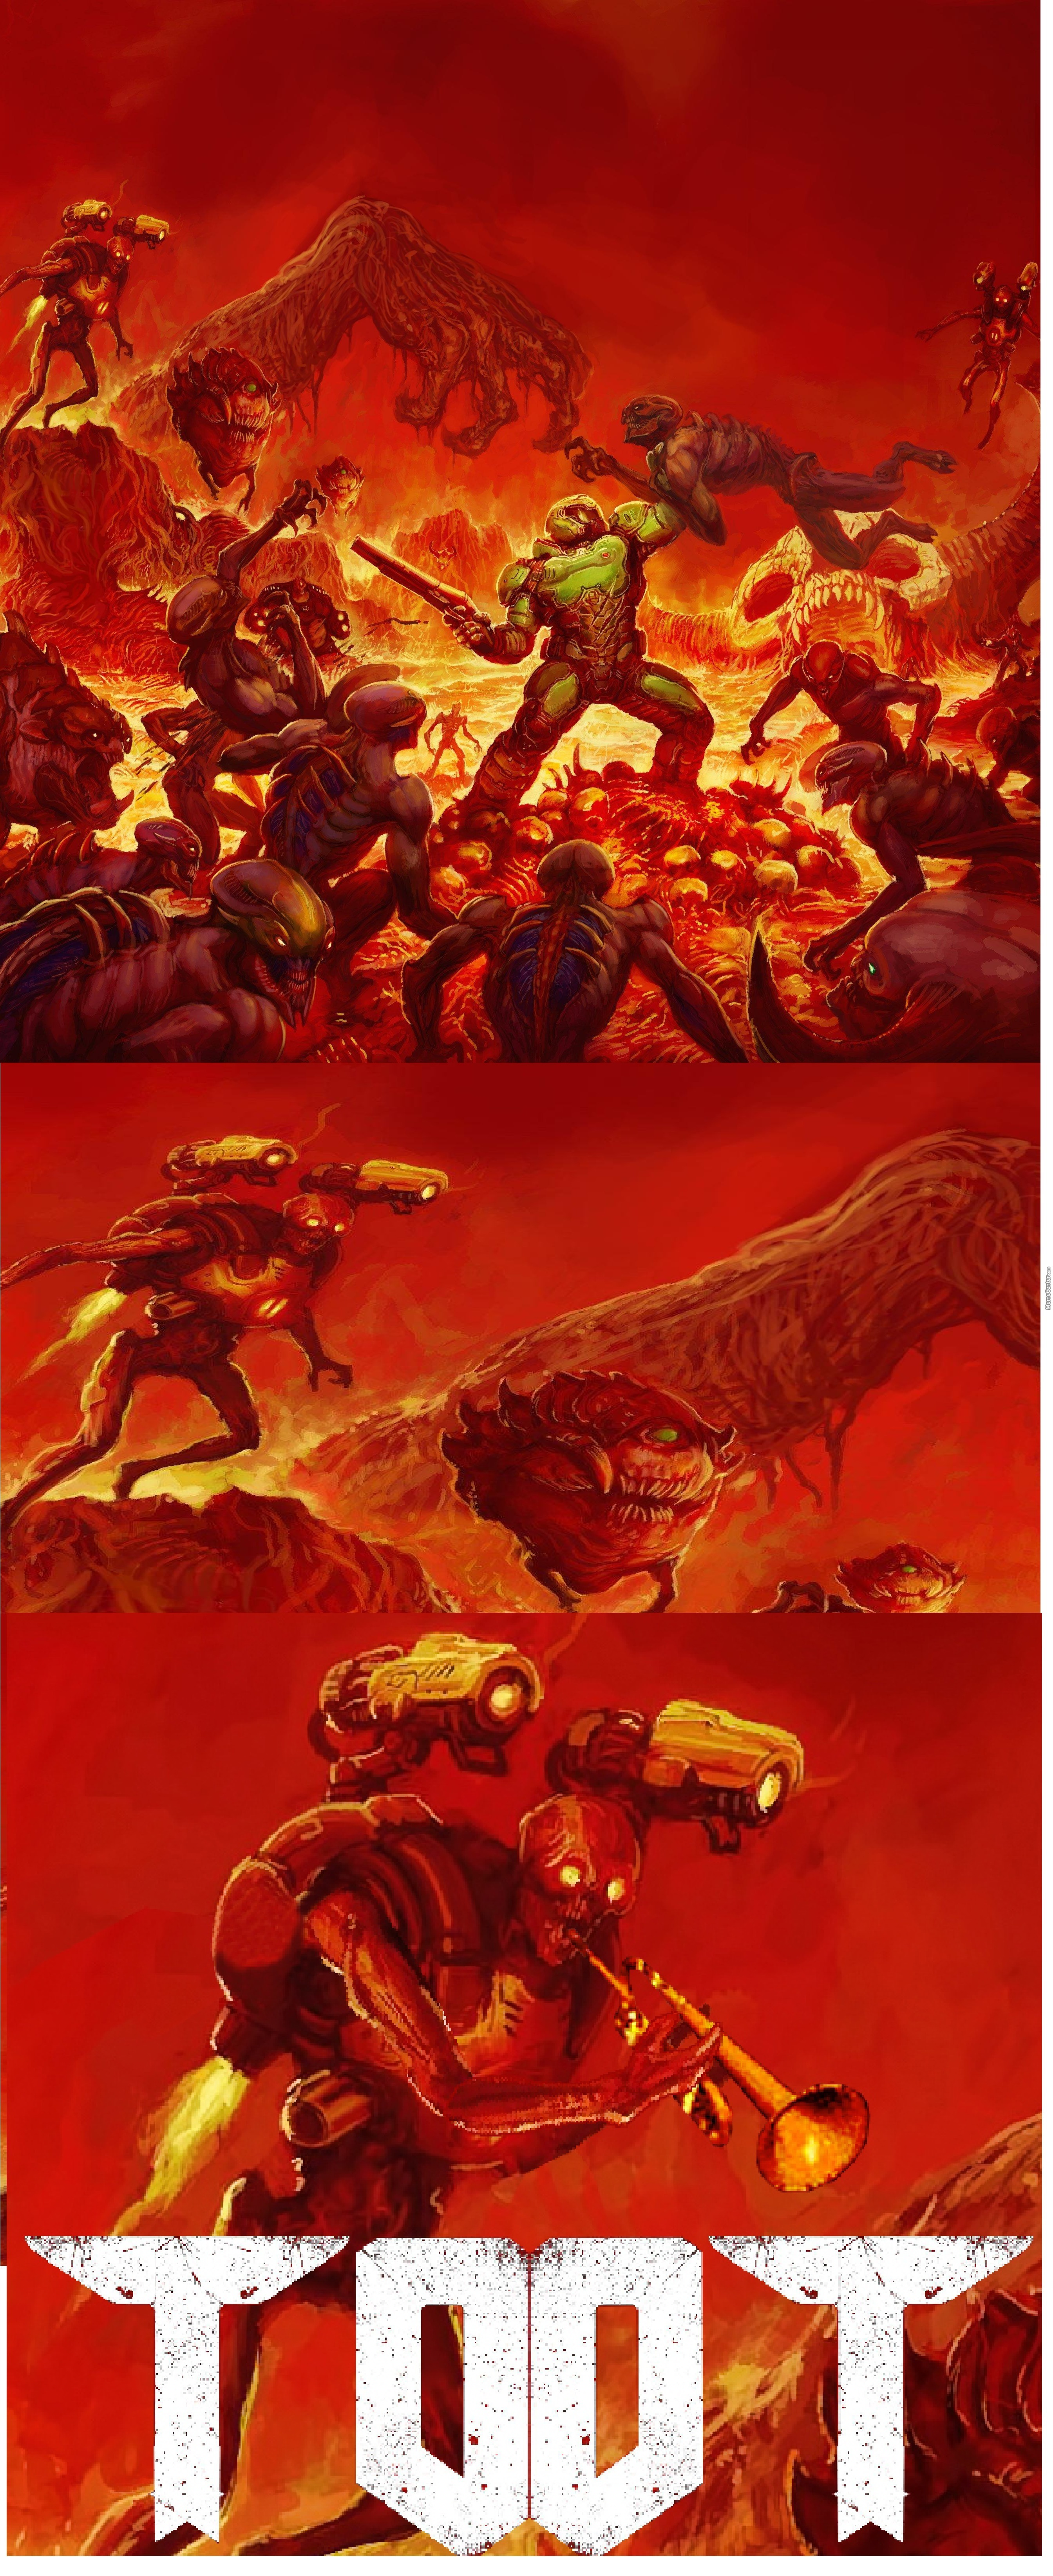 Doom 2016 Cover Is 3Spoopy5Me